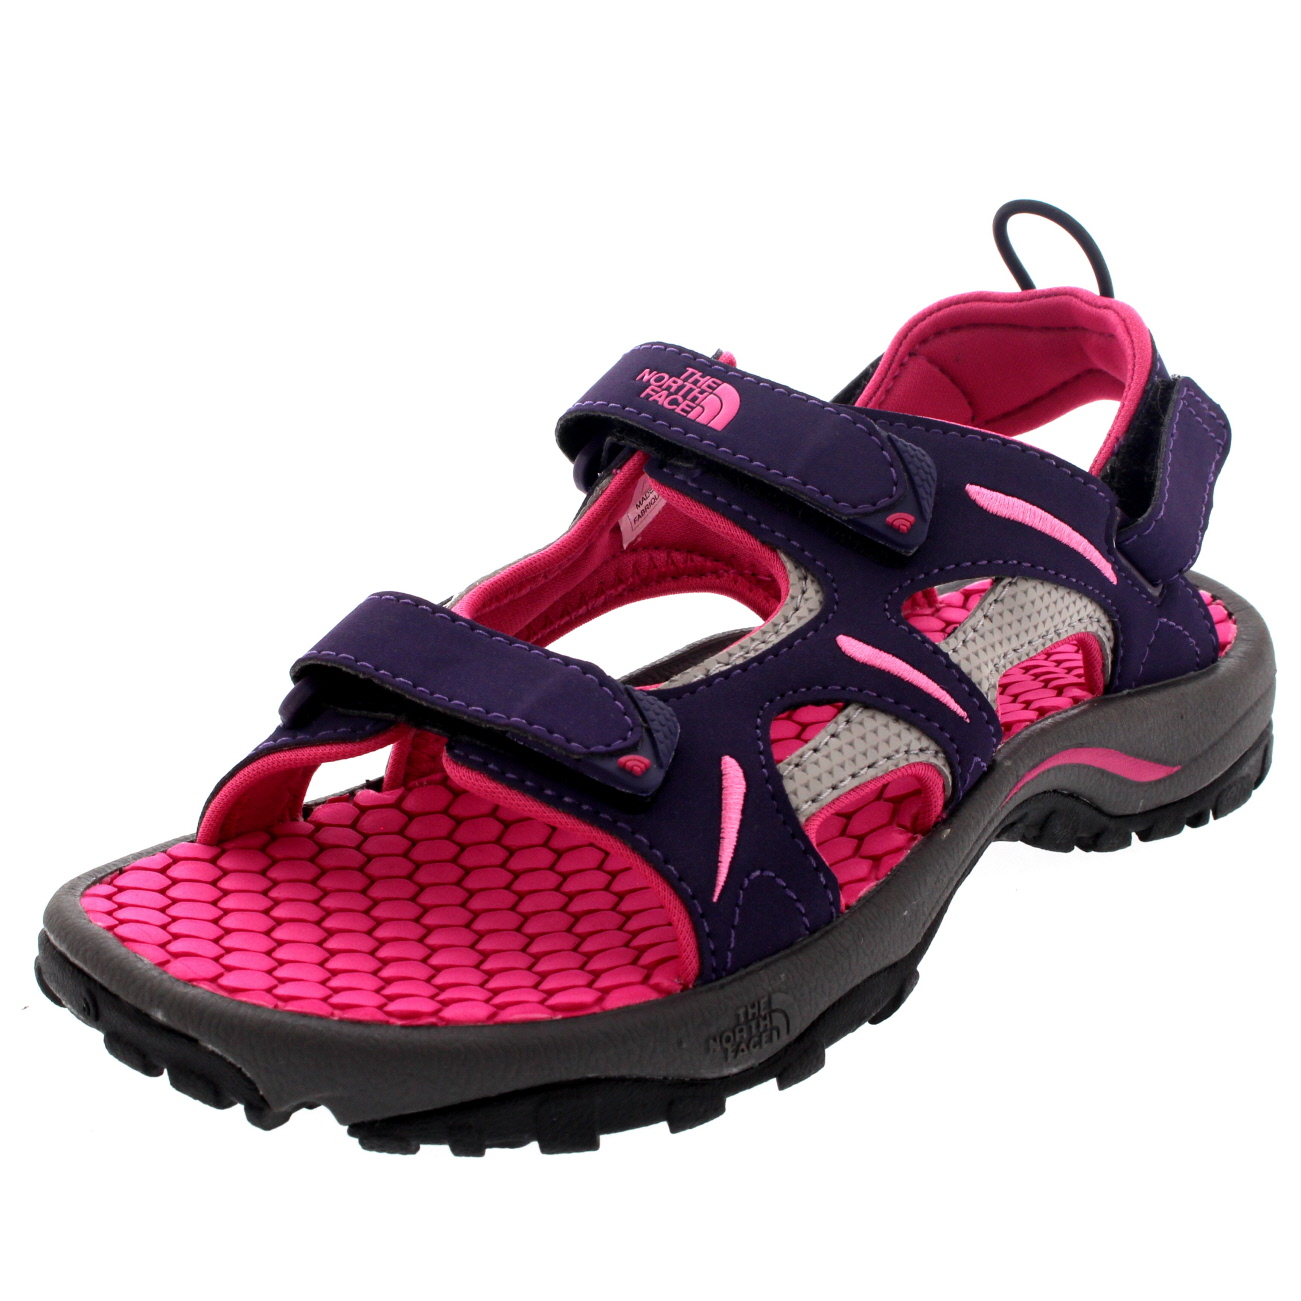 chanclas north face mujer